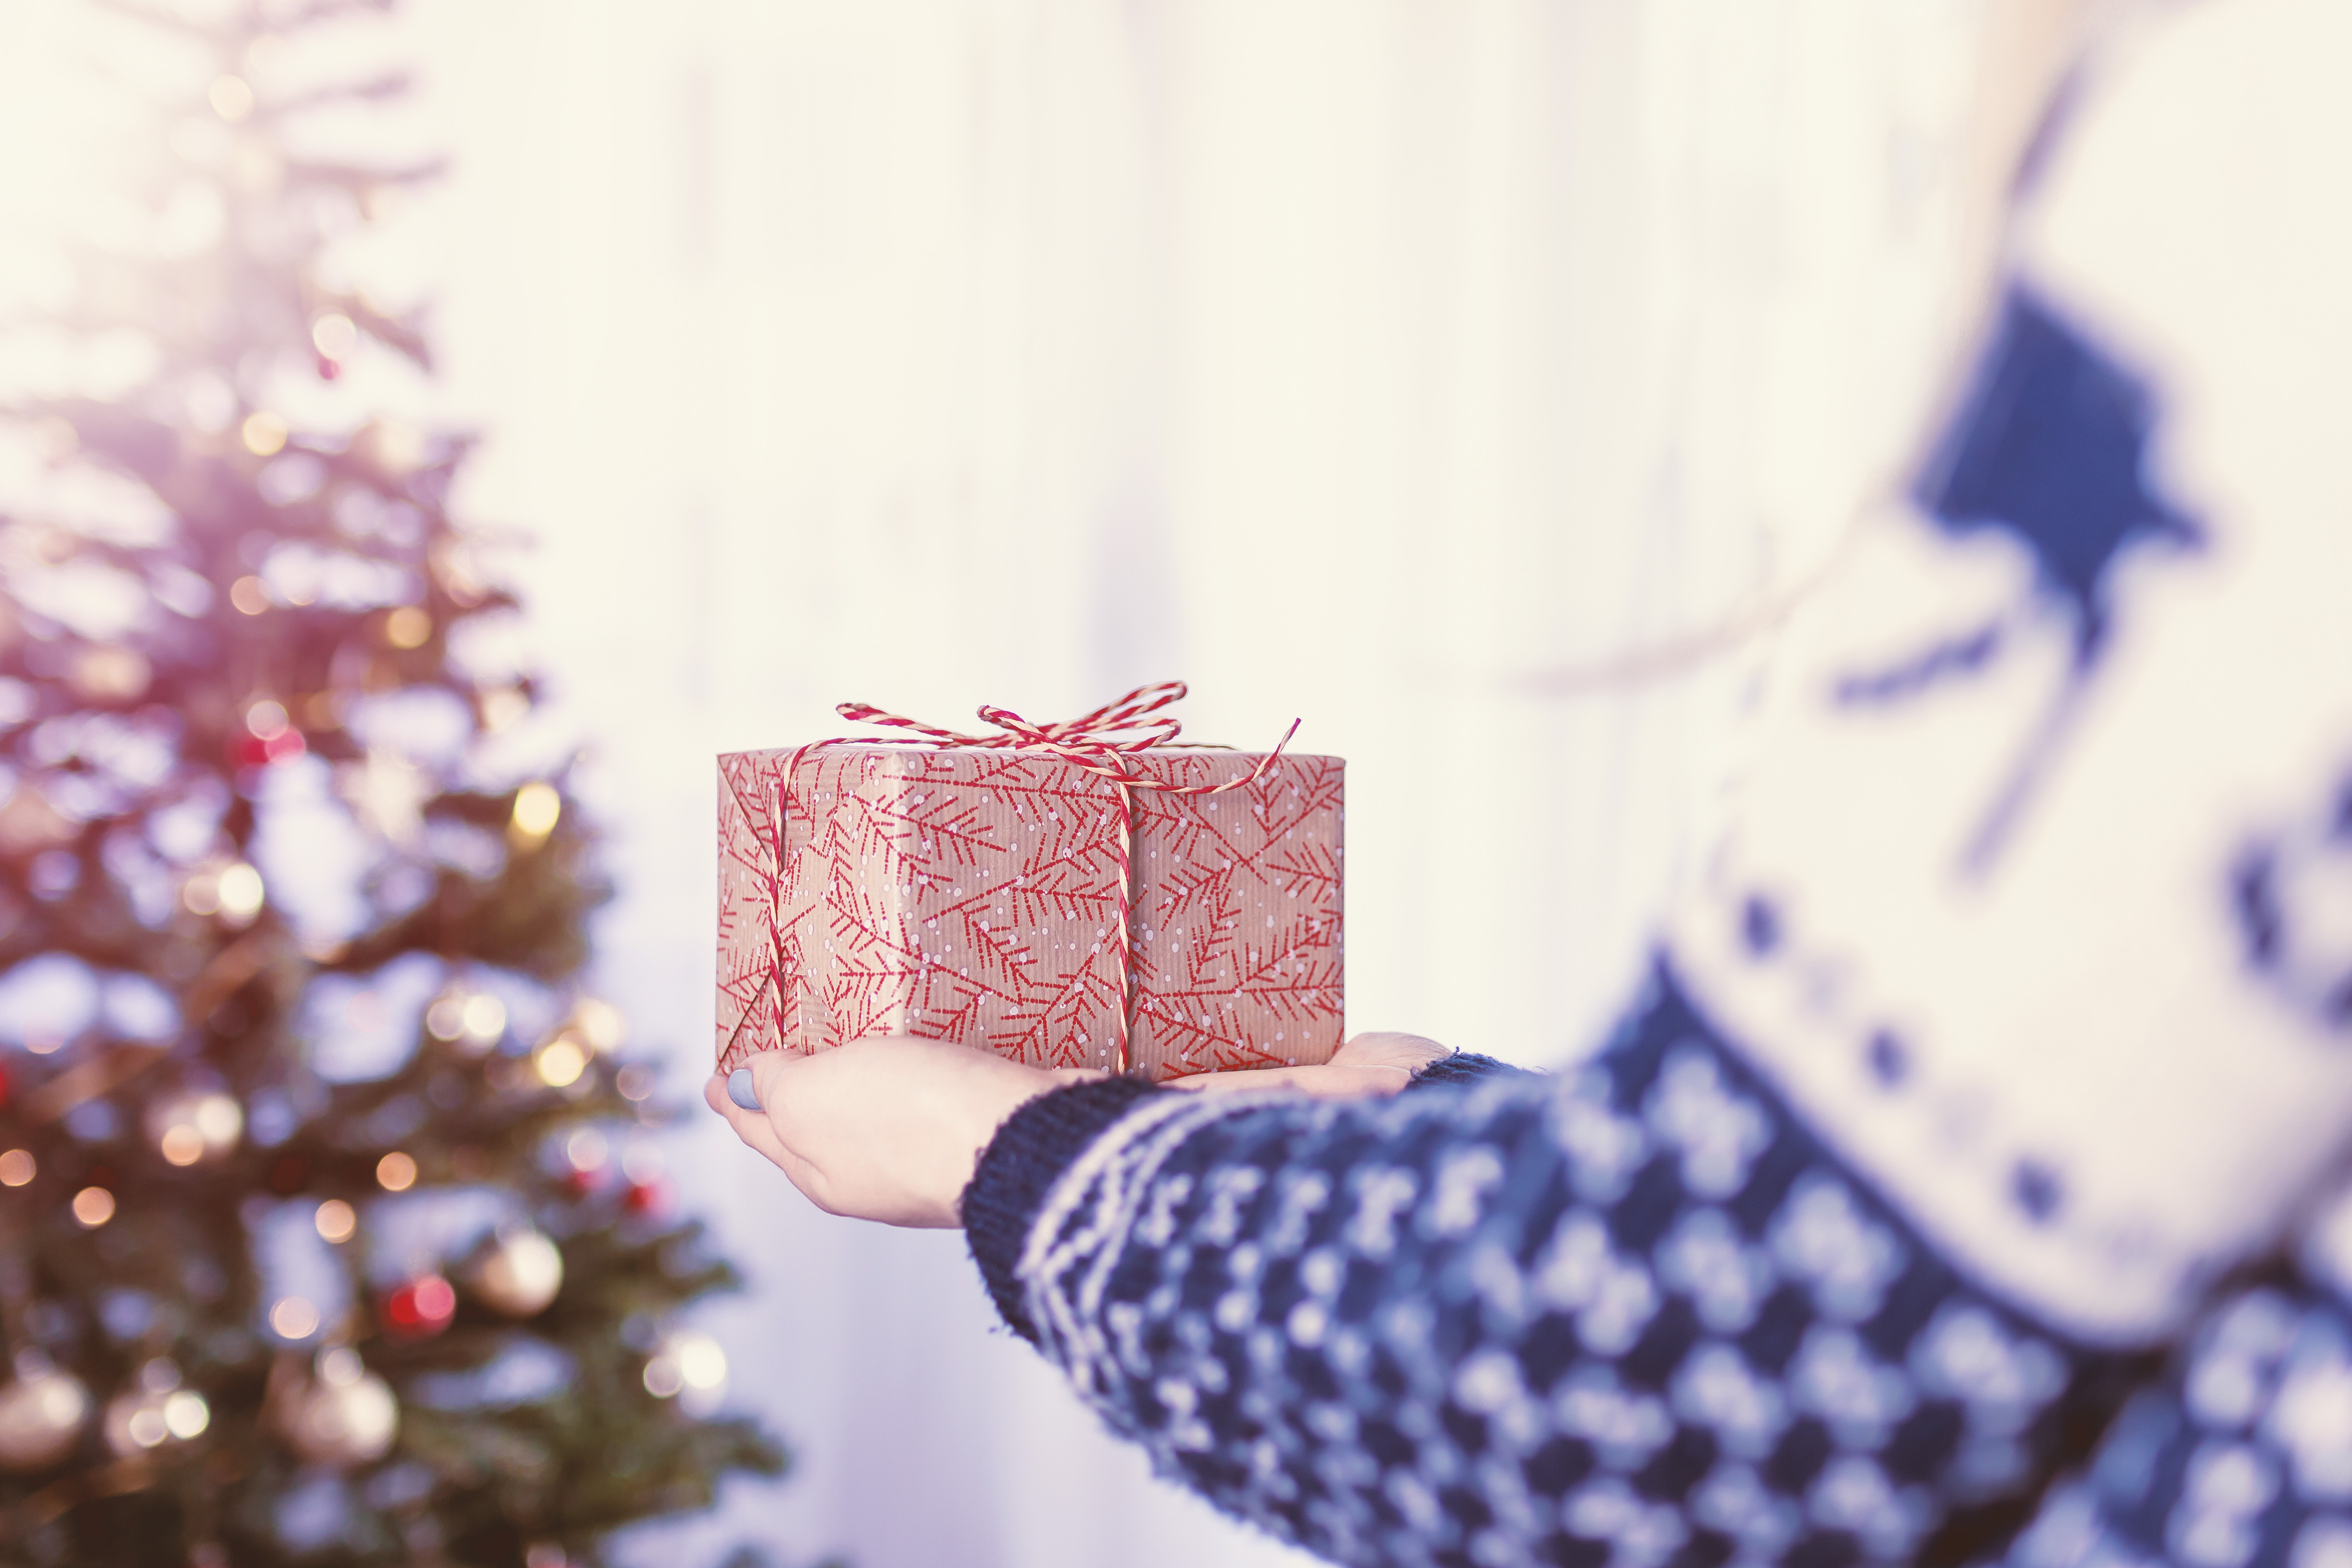 Red and Gray Gift, Blur, Indoors, White, Tree, HQ Photo